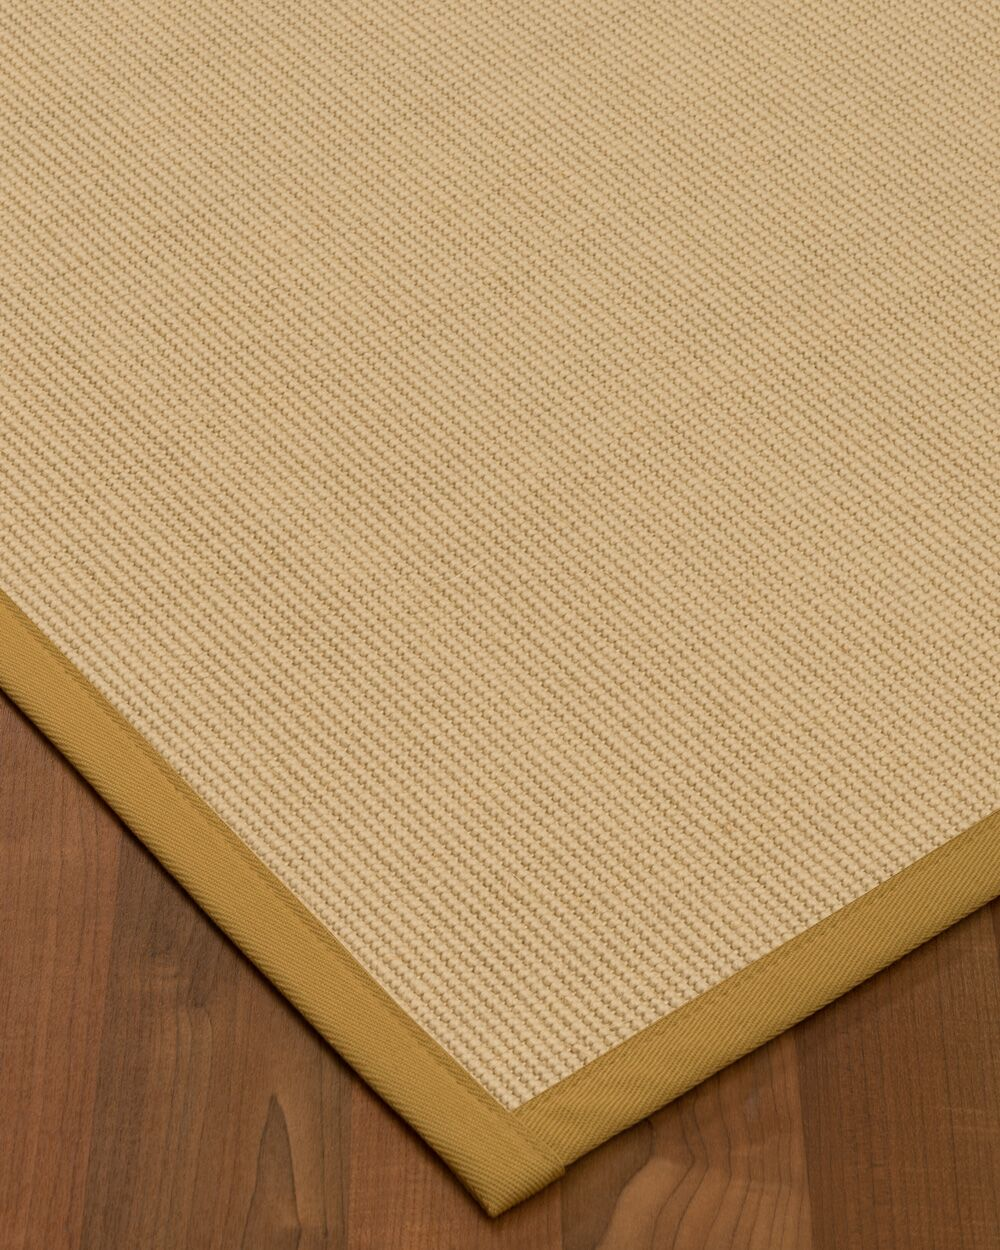 Vannatta Border Hand-Woven Wool Beige/Ivory Area Rug Rug Size: Rectangle 12' x 15', Rug Pad Included: Yes